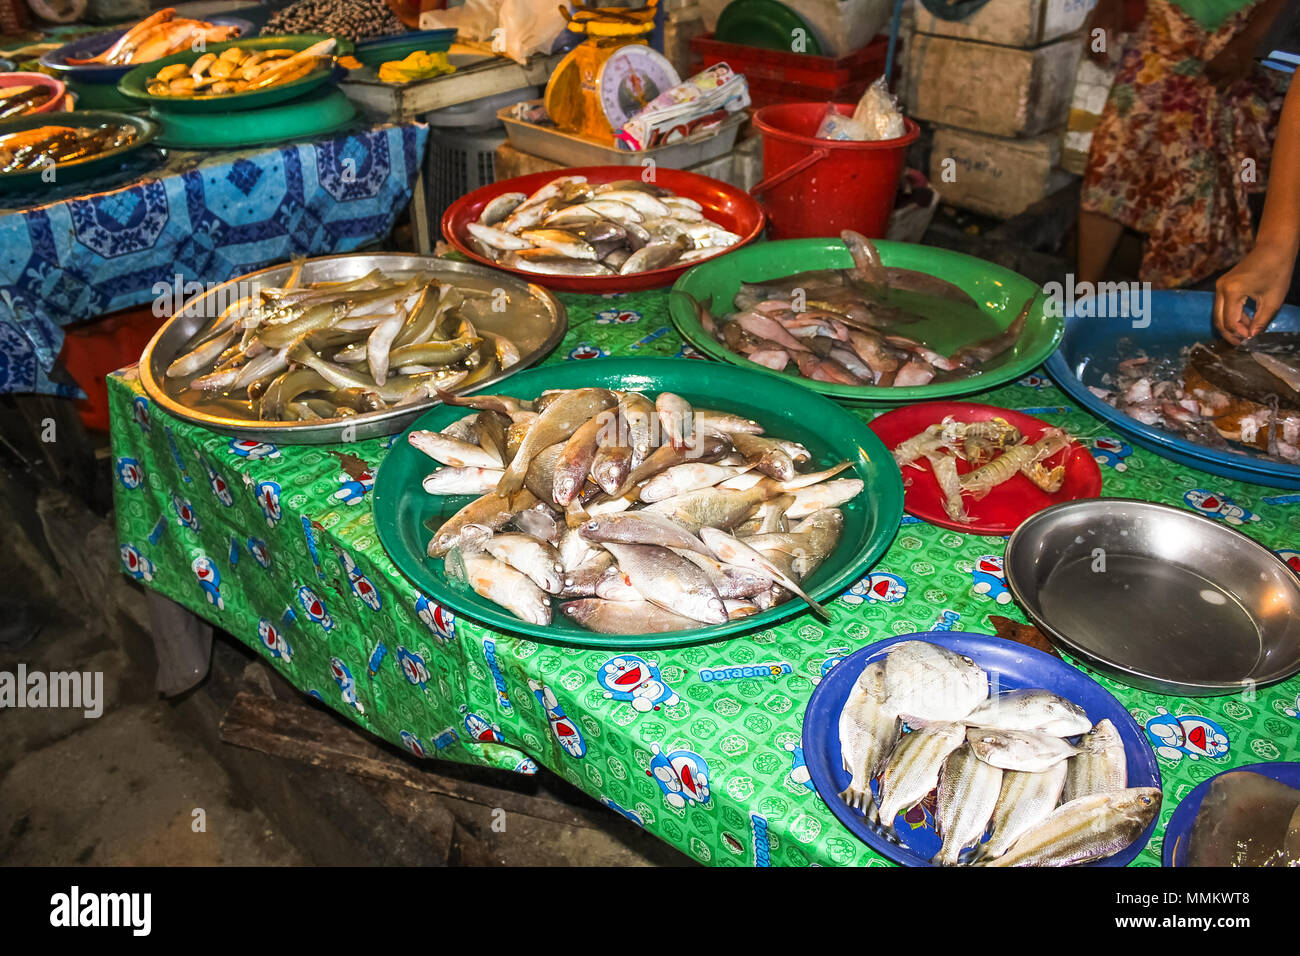 Chiang Mai, Thailand - August 5, 2011: Different kind of fishes,crustaceans and shellfishes in the famous Sunday night market in town - Stock Image